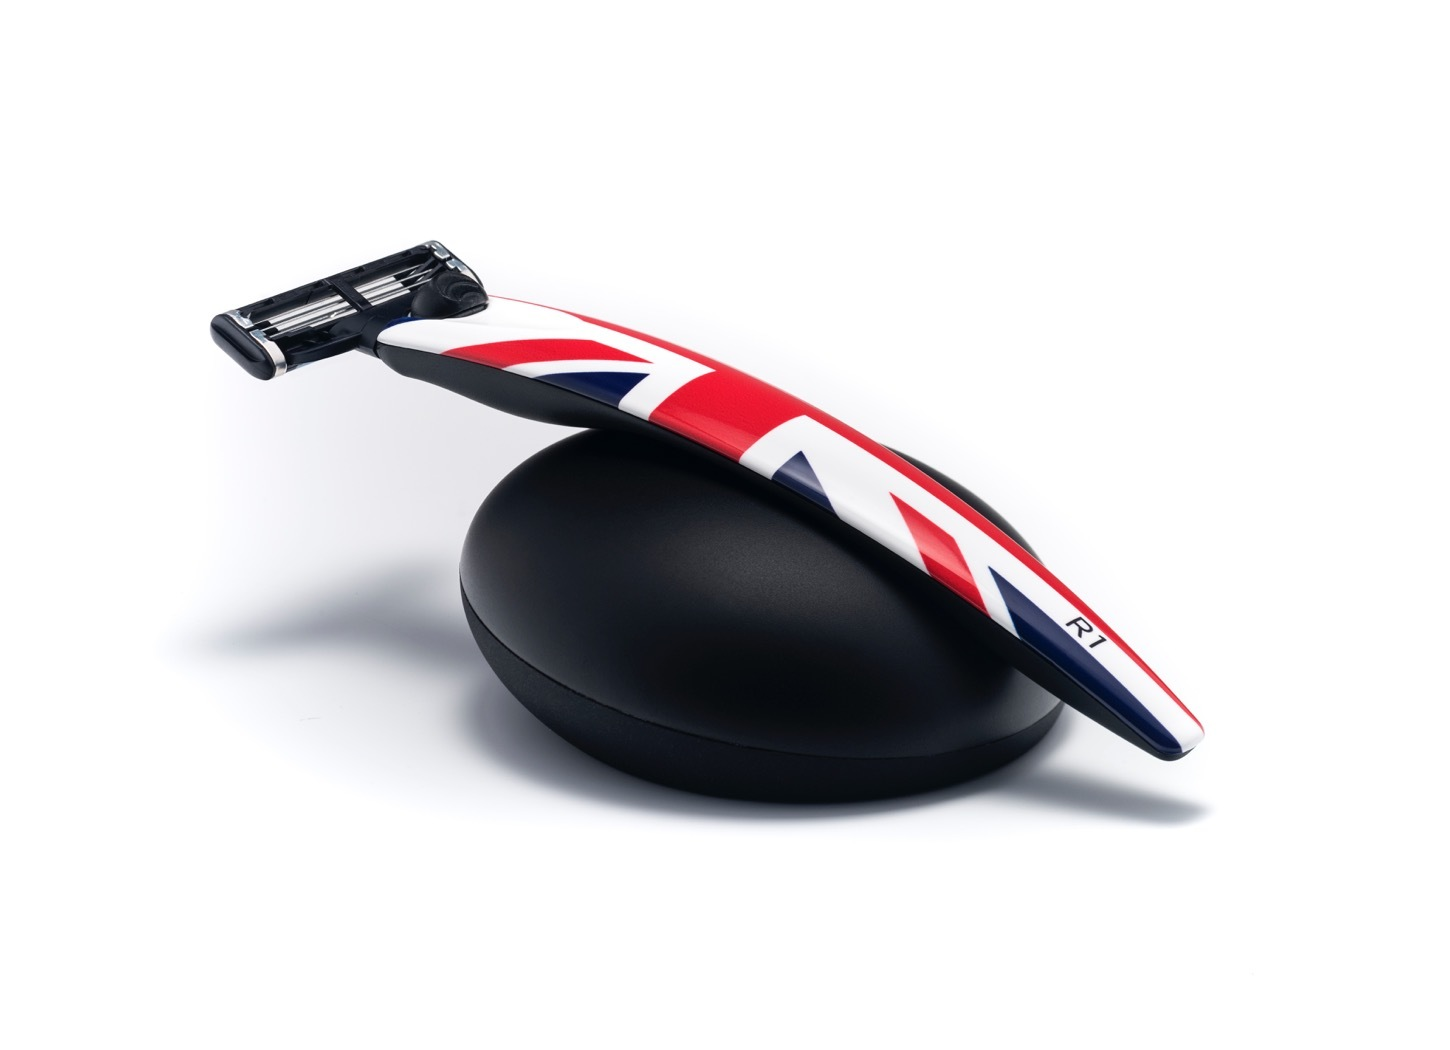 ���������� ����� Bolin Webb R1, ������ R1 Union Jack, ��������� R1